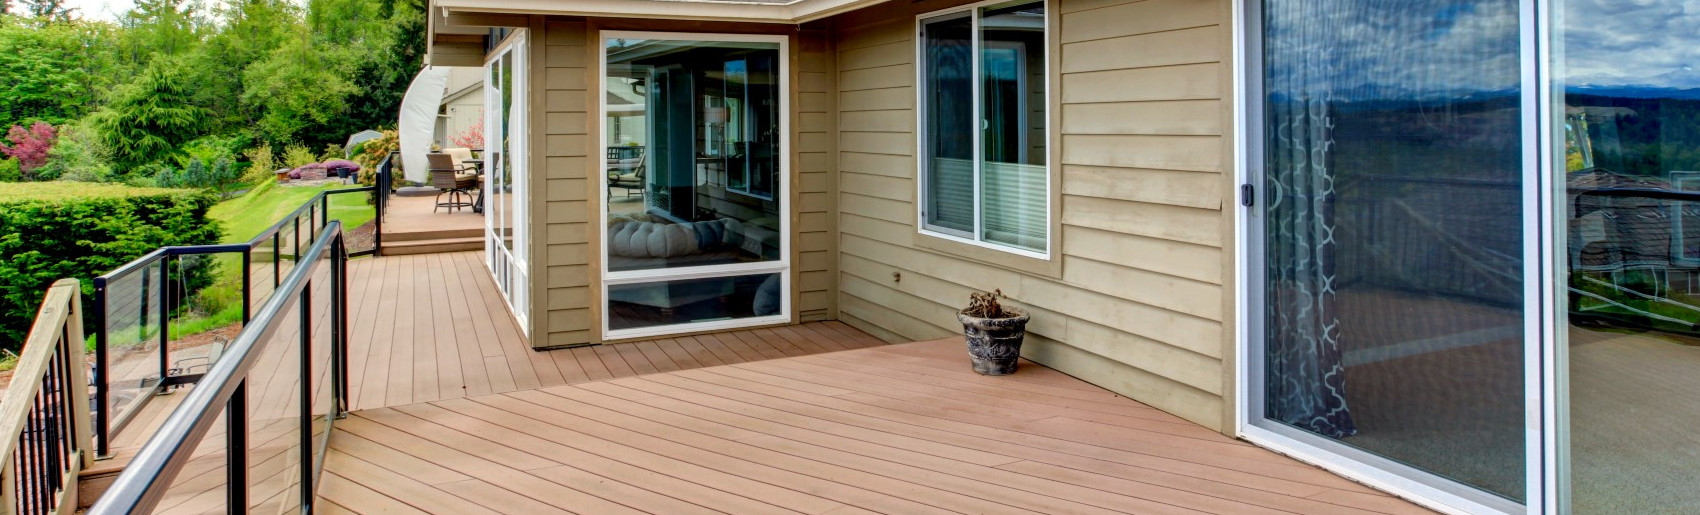 Benefits with a Deck Restoration